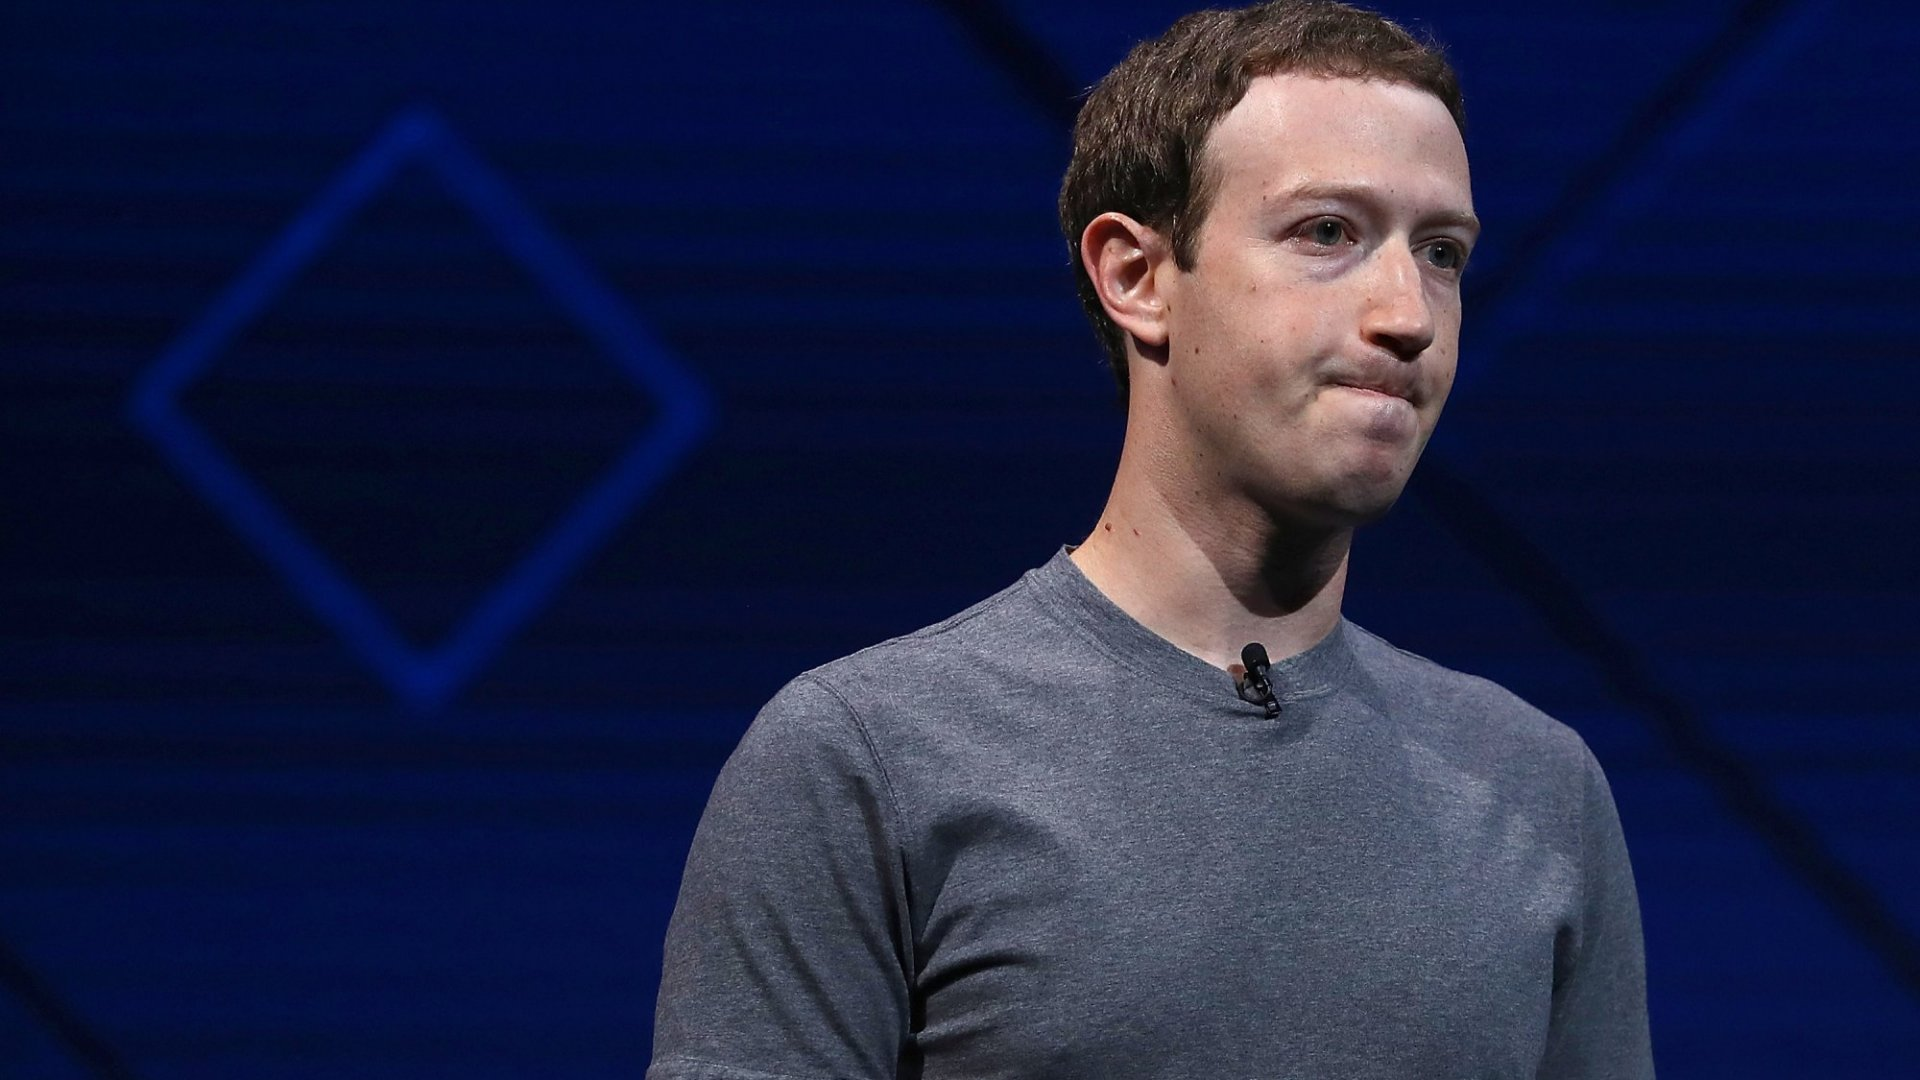 Mark Zuckerberg Says He Made a 'Huge Mistake' and That Fixing Facebook Will Take Years